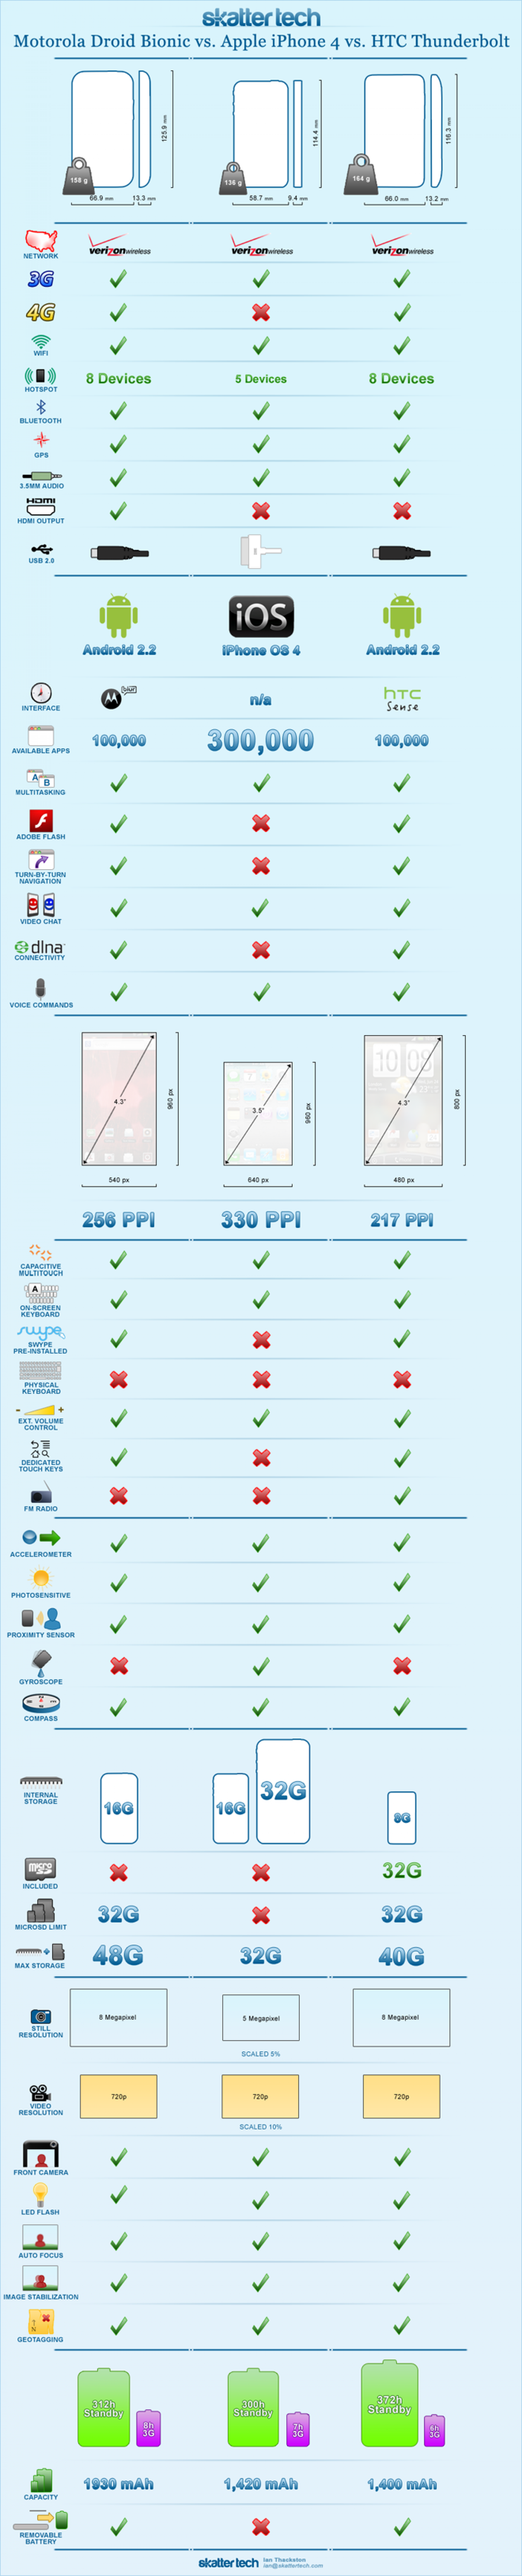 Motorola Droid Bionic vs. Apple iPhone 4 vs. HTC Thunderbolt Infographic